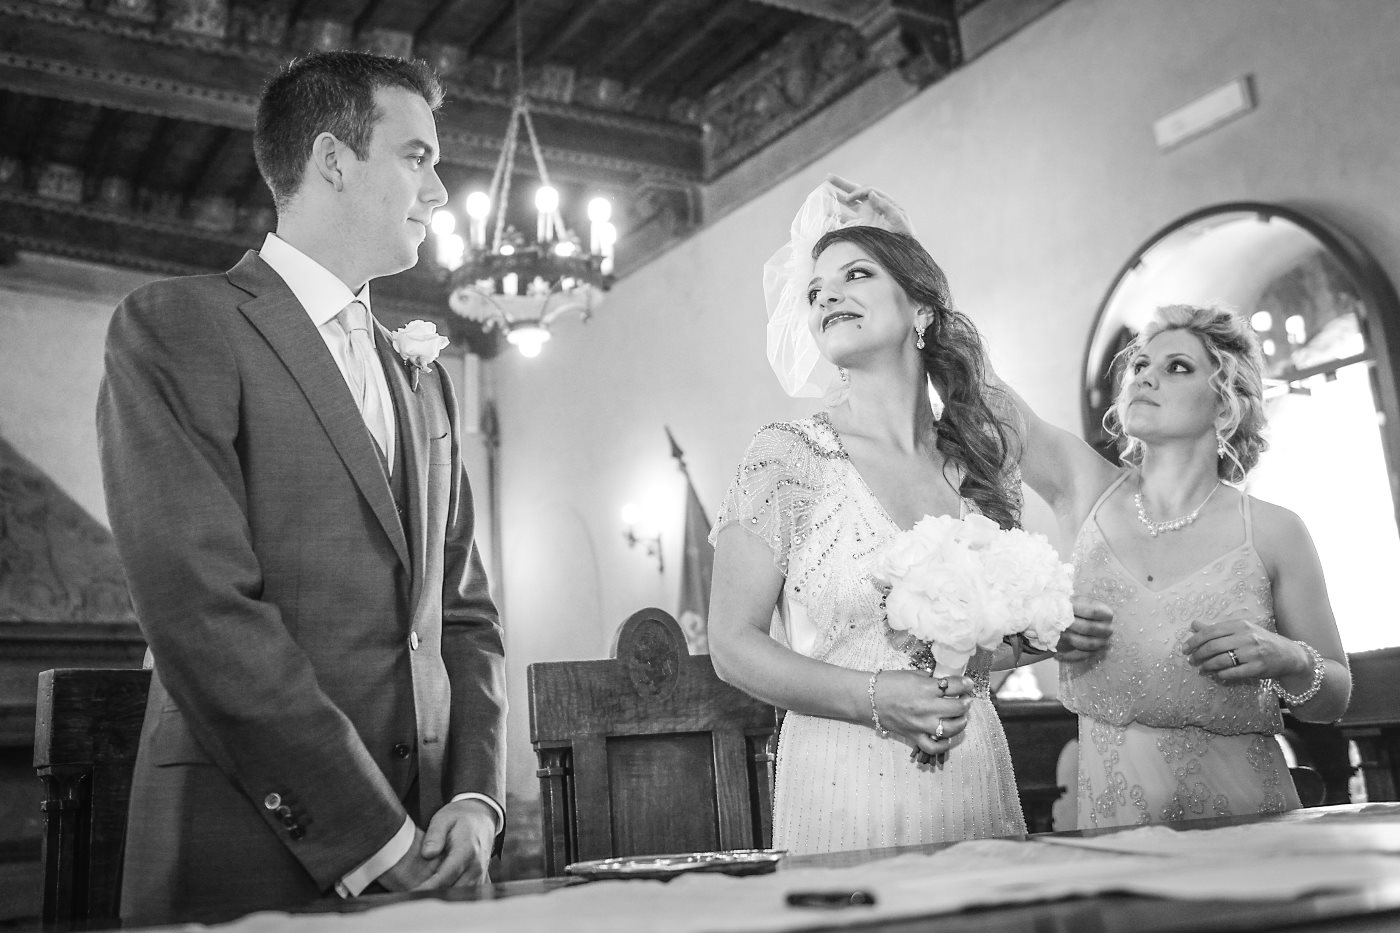 photographer_weddings_cortona_06.jpg